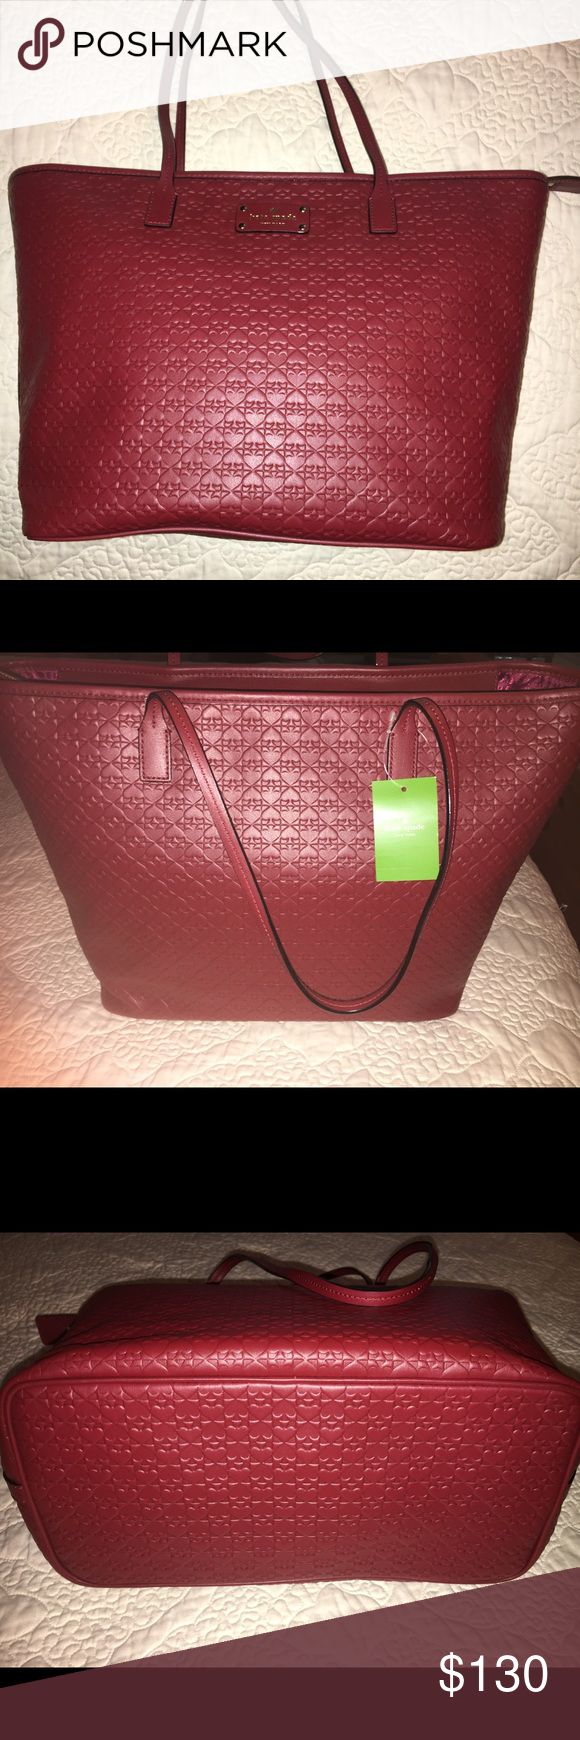 Kate Spade NWT large tote Large deep red kate spade bag from online store not outlet. Never used . Great for laptops travel etc NWT. kate spade Bags Totes